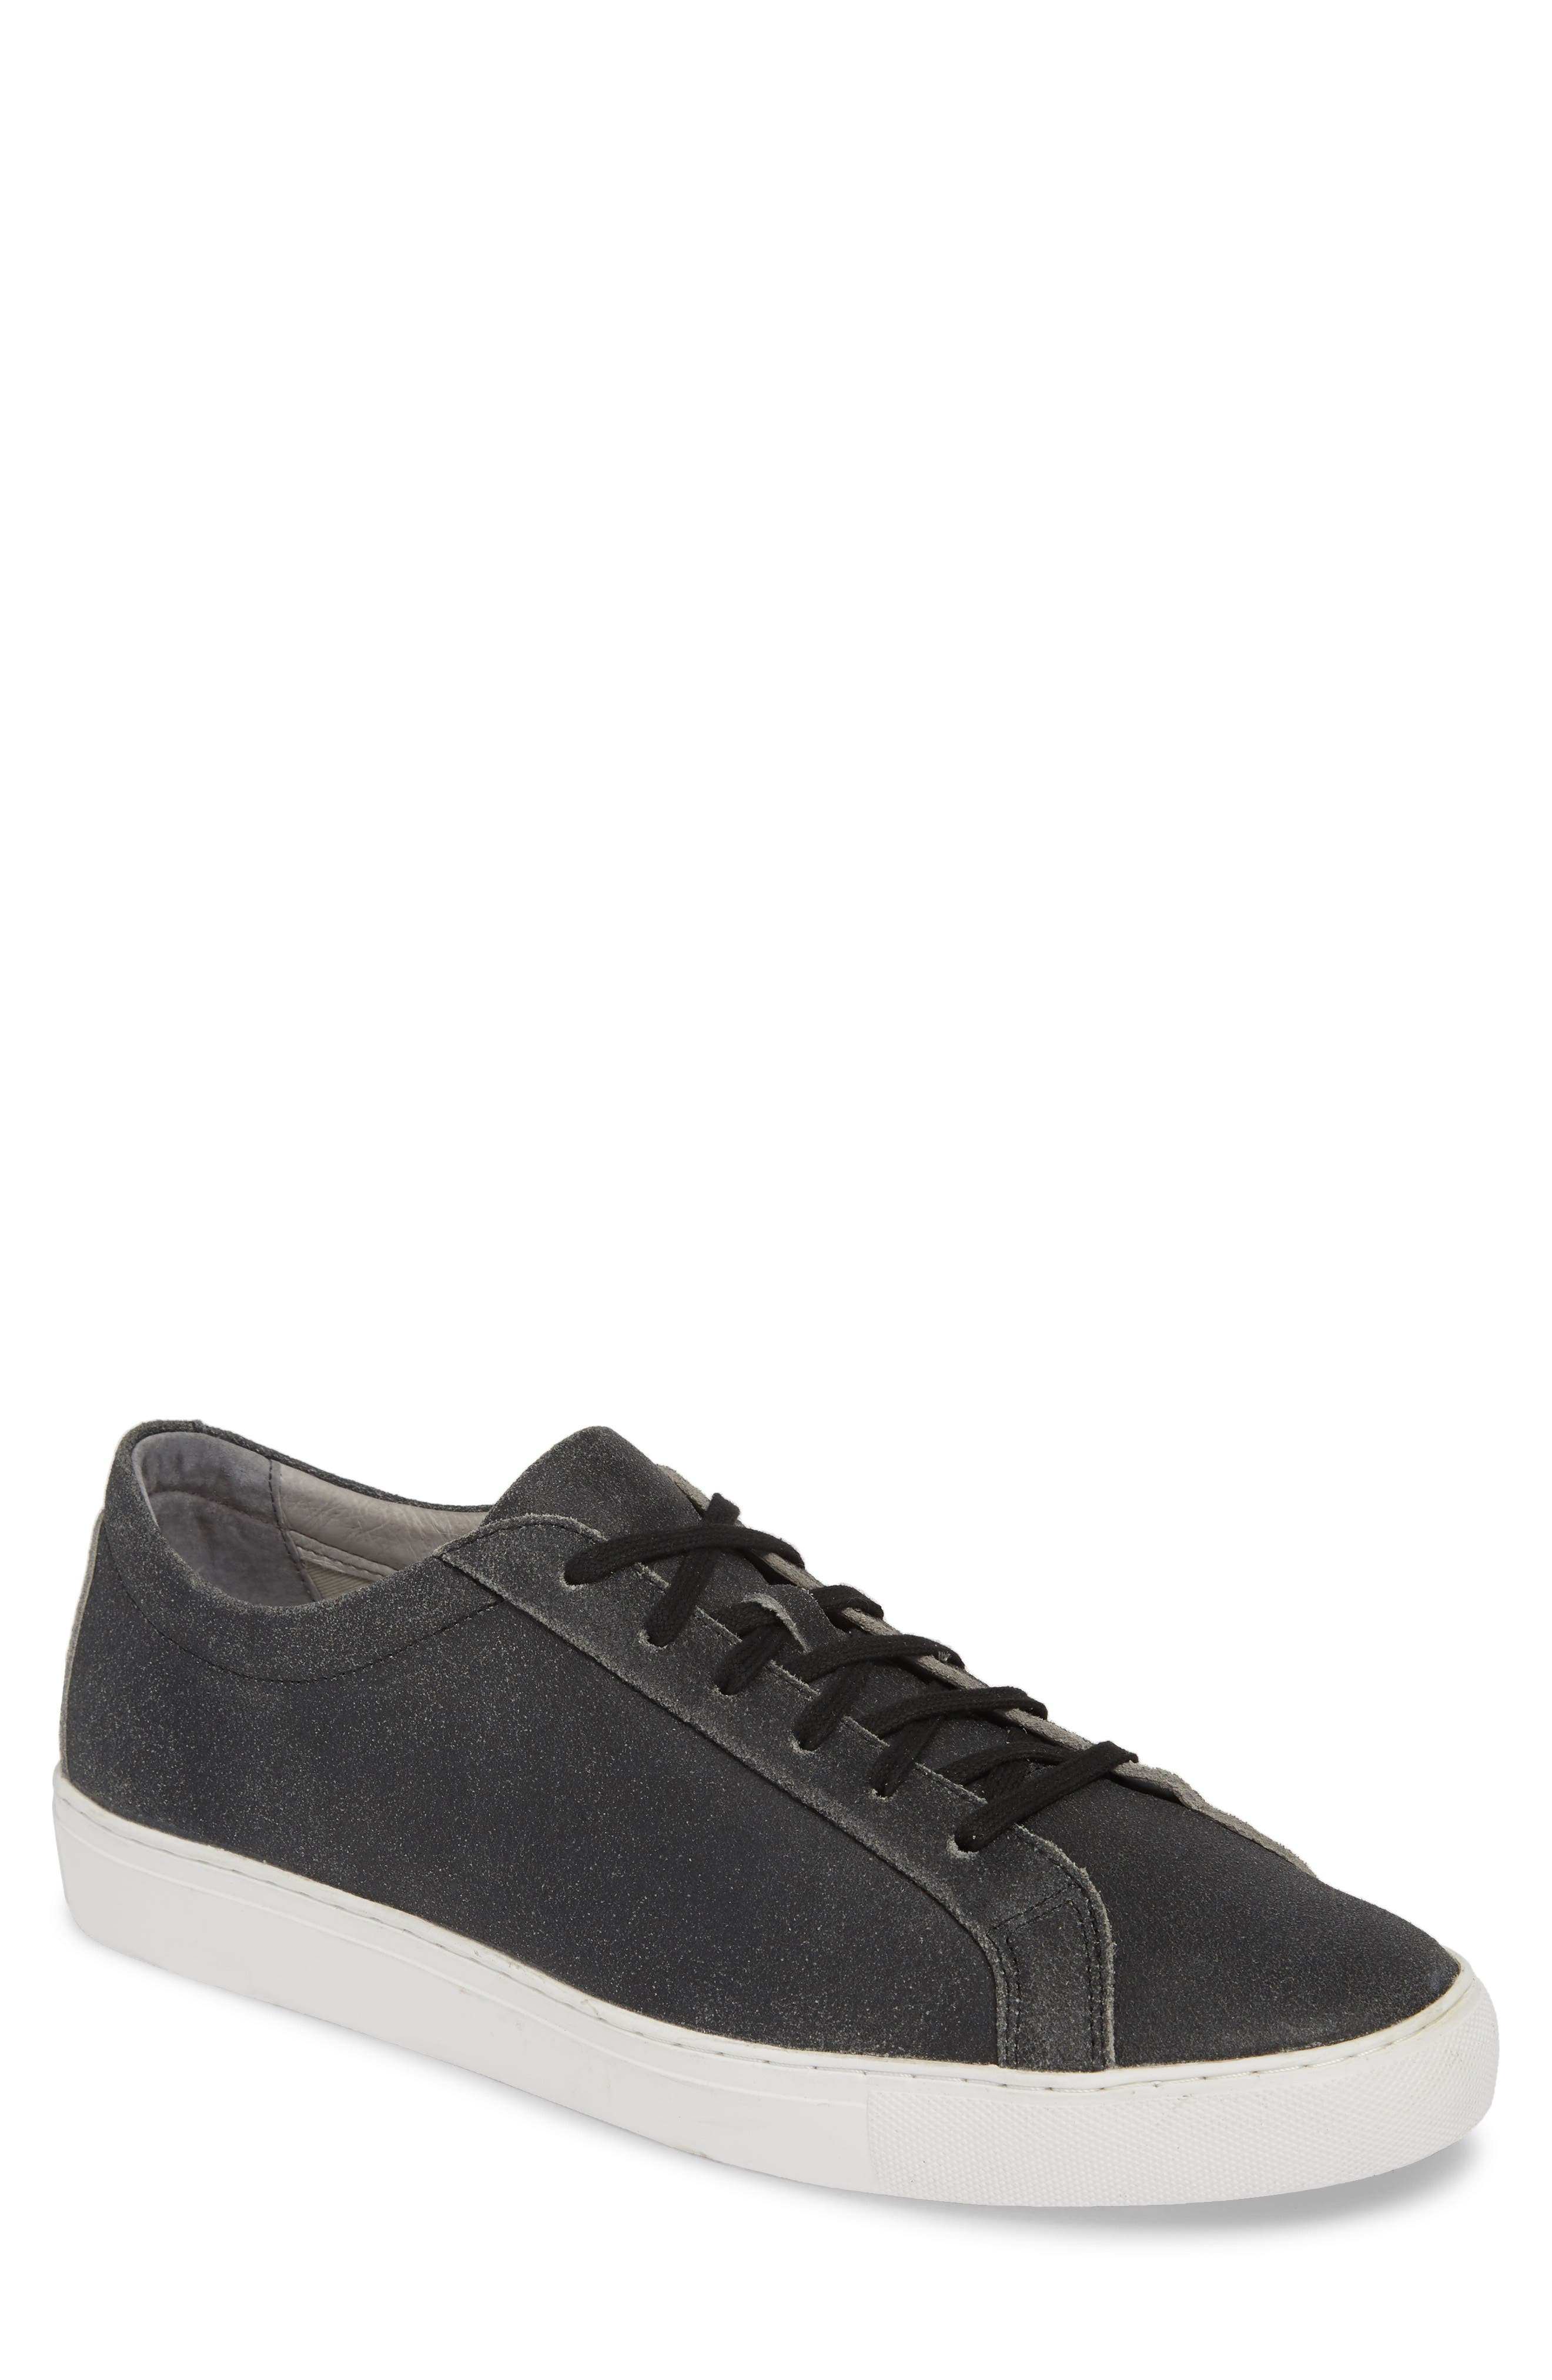 TCG, Kennedy Low Top Sneaker, Main thumbnail 1, color, CRACKED BLACK LEATHER